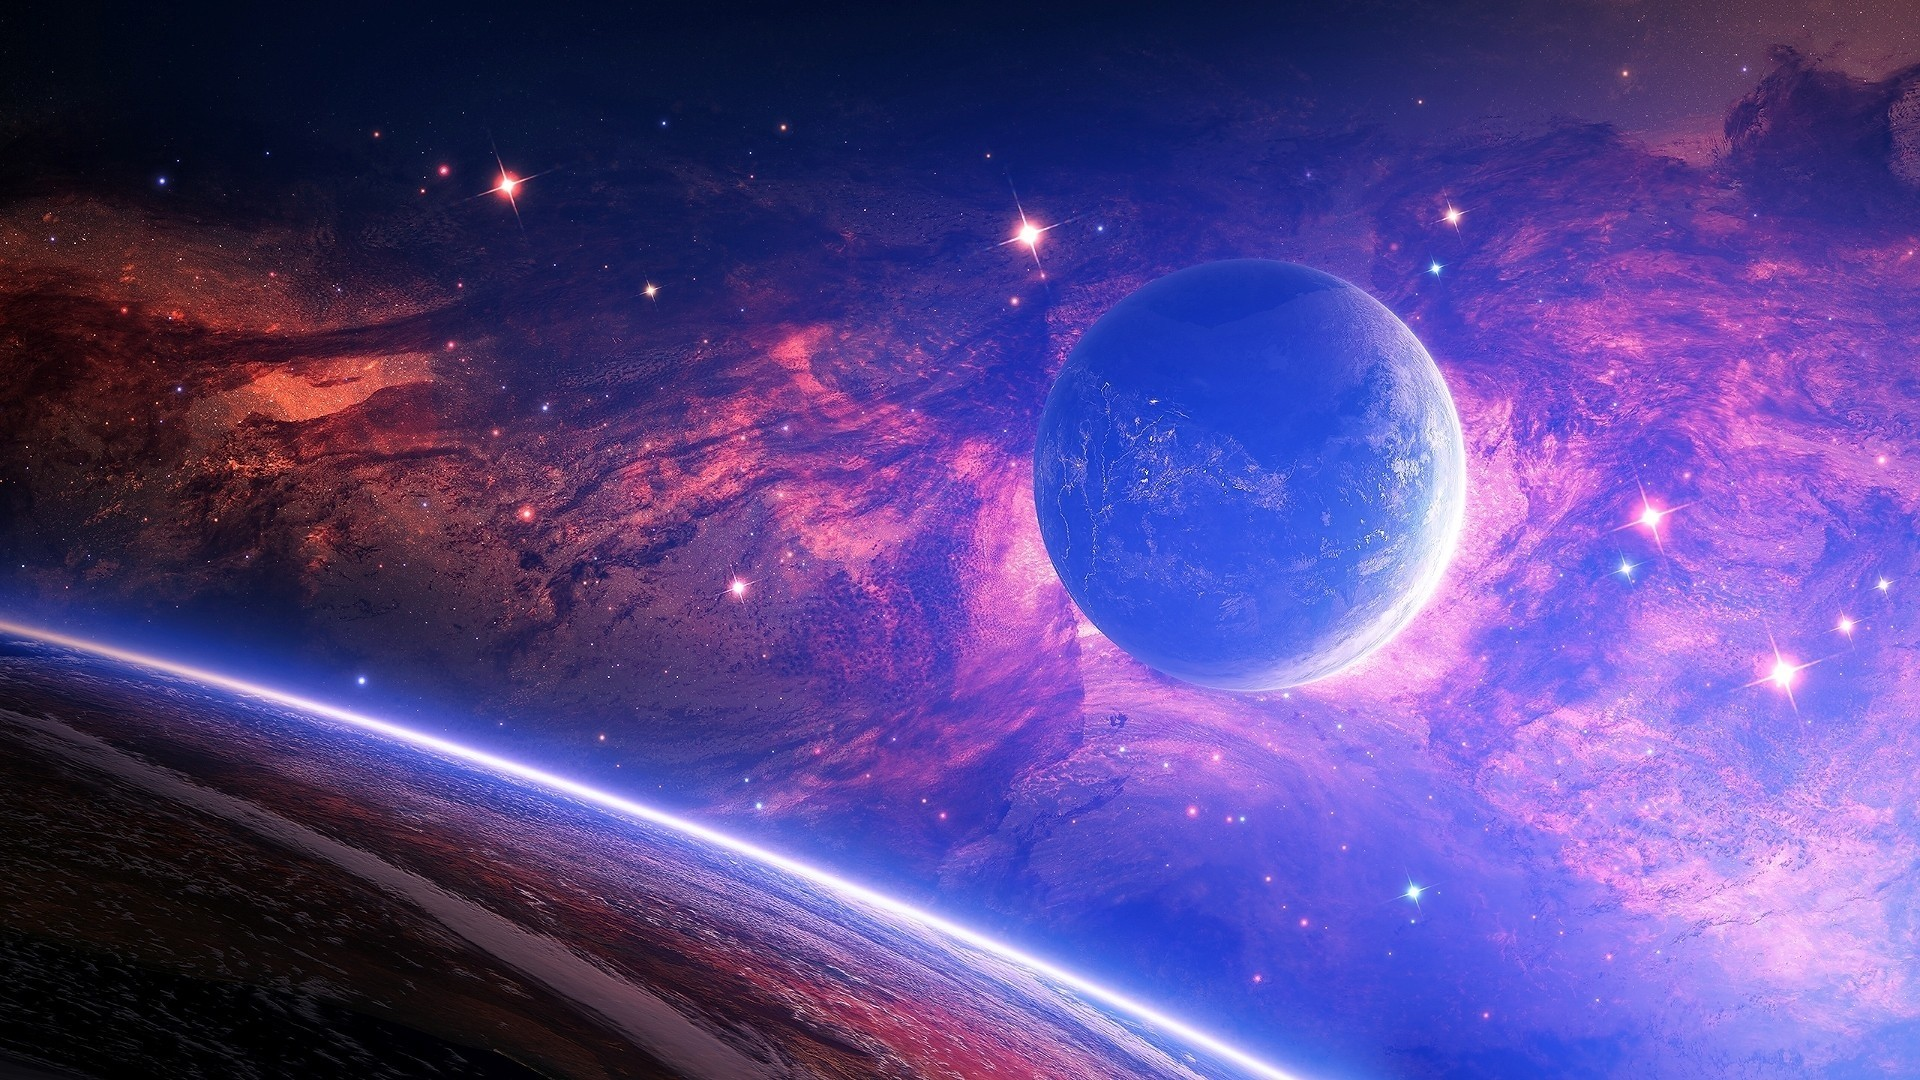 Cool space background wallpapers 68 images for Space wallpaper 1366x768